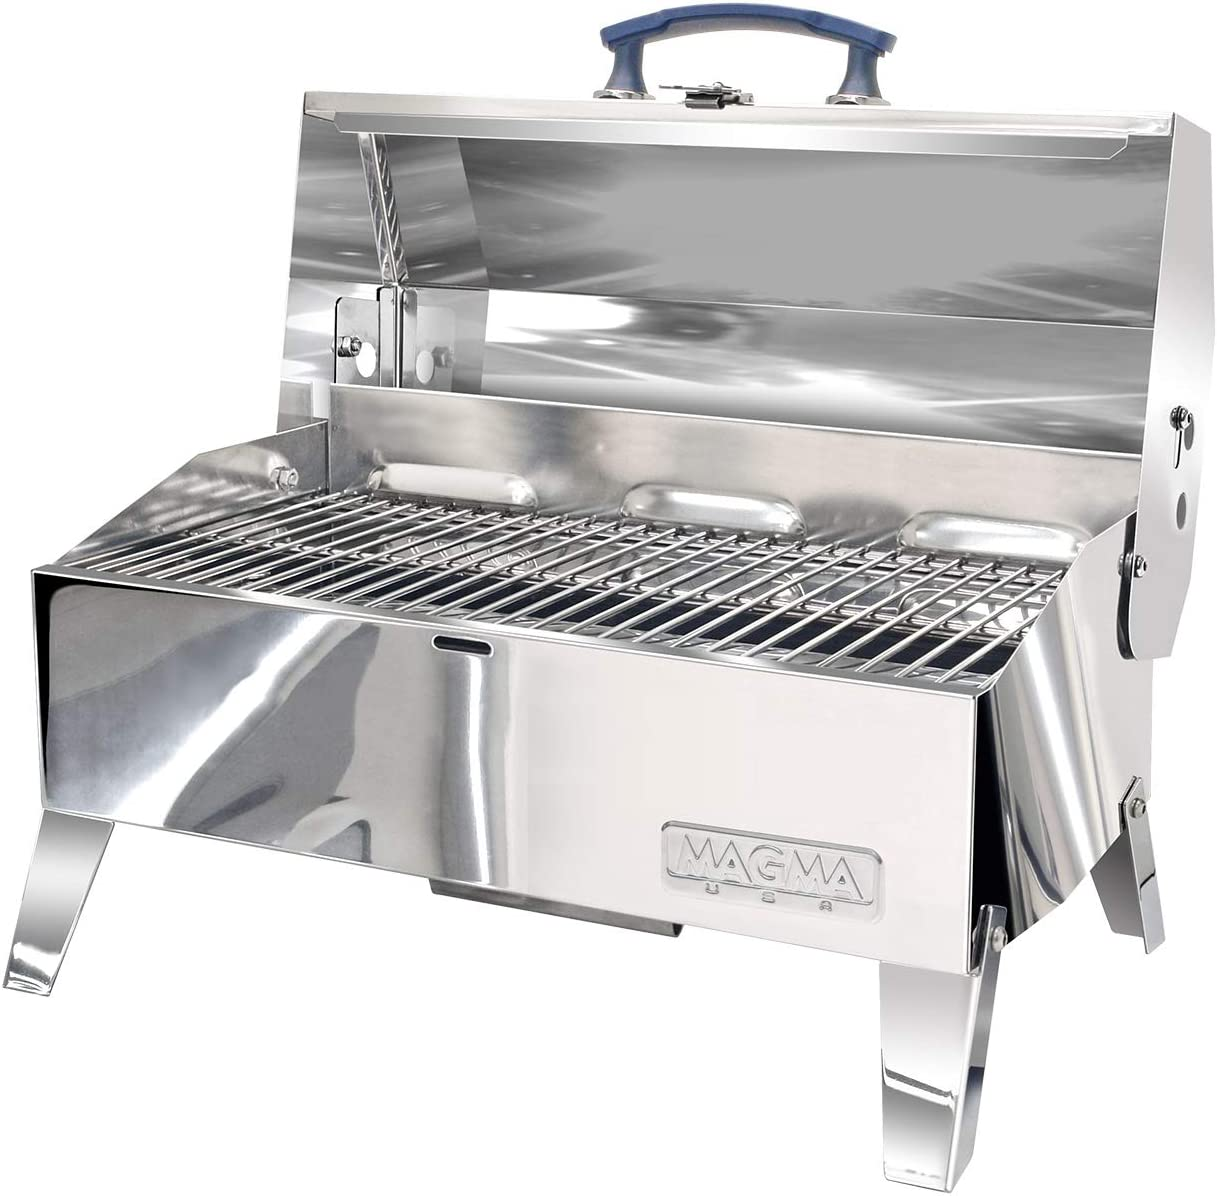 New Cabo Adventurer Marine Series Charcoal Grill Magma A10-703c Cooking Area Primary – 9 L x 18 W 162 Sq. in.